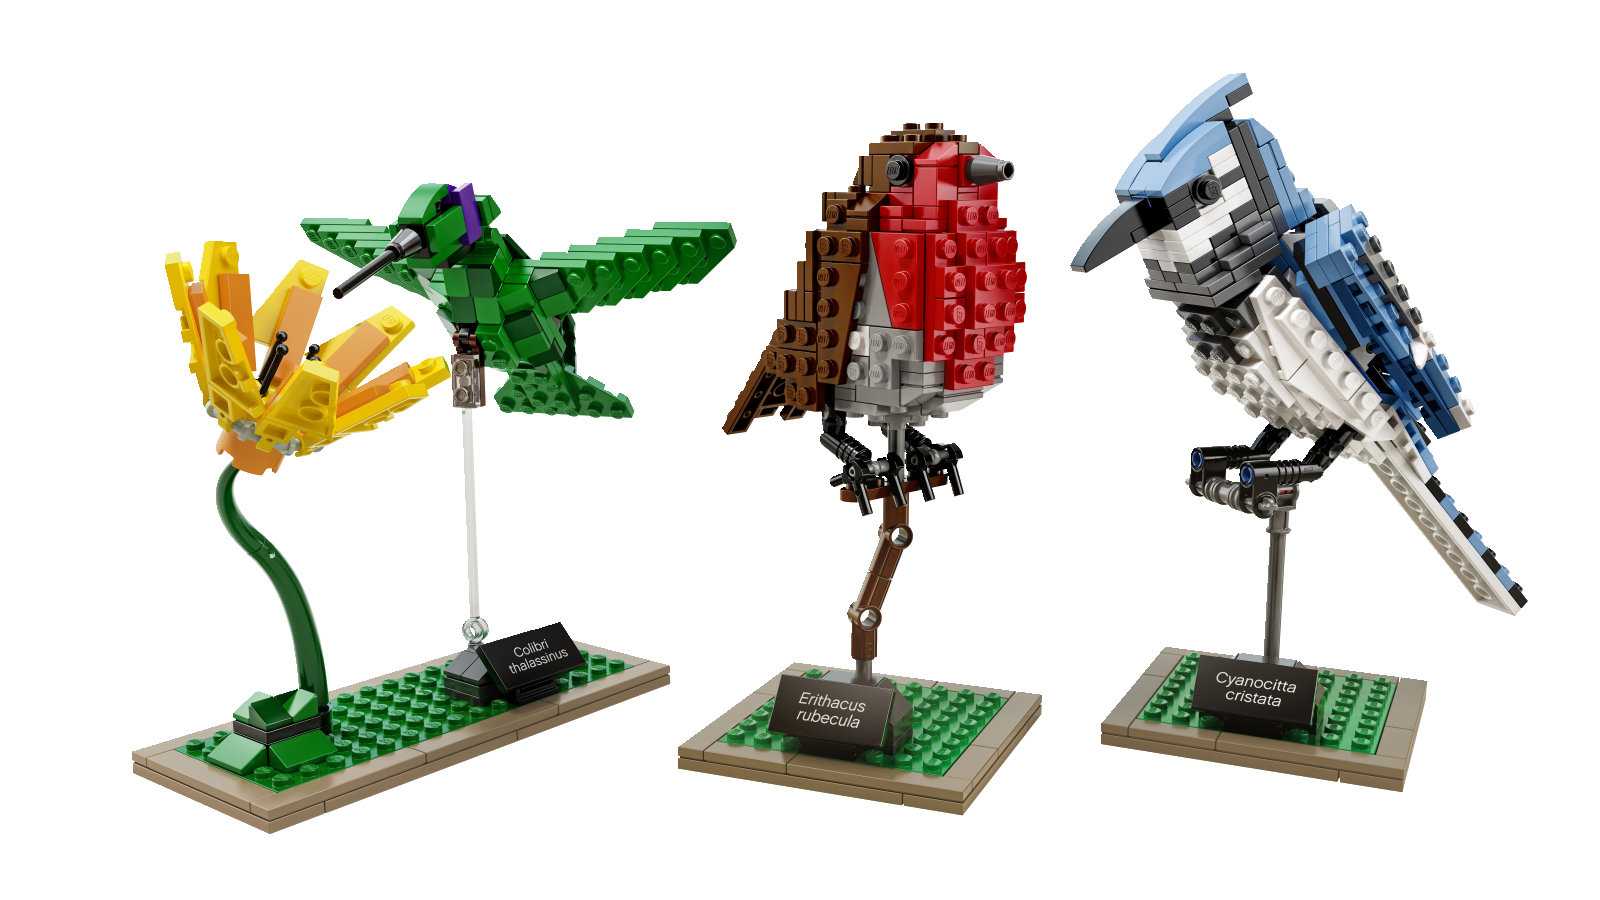 https://ideascdn.lego.com/community/lego_ci/blogs/1/1686429-21301_Prod.PNG